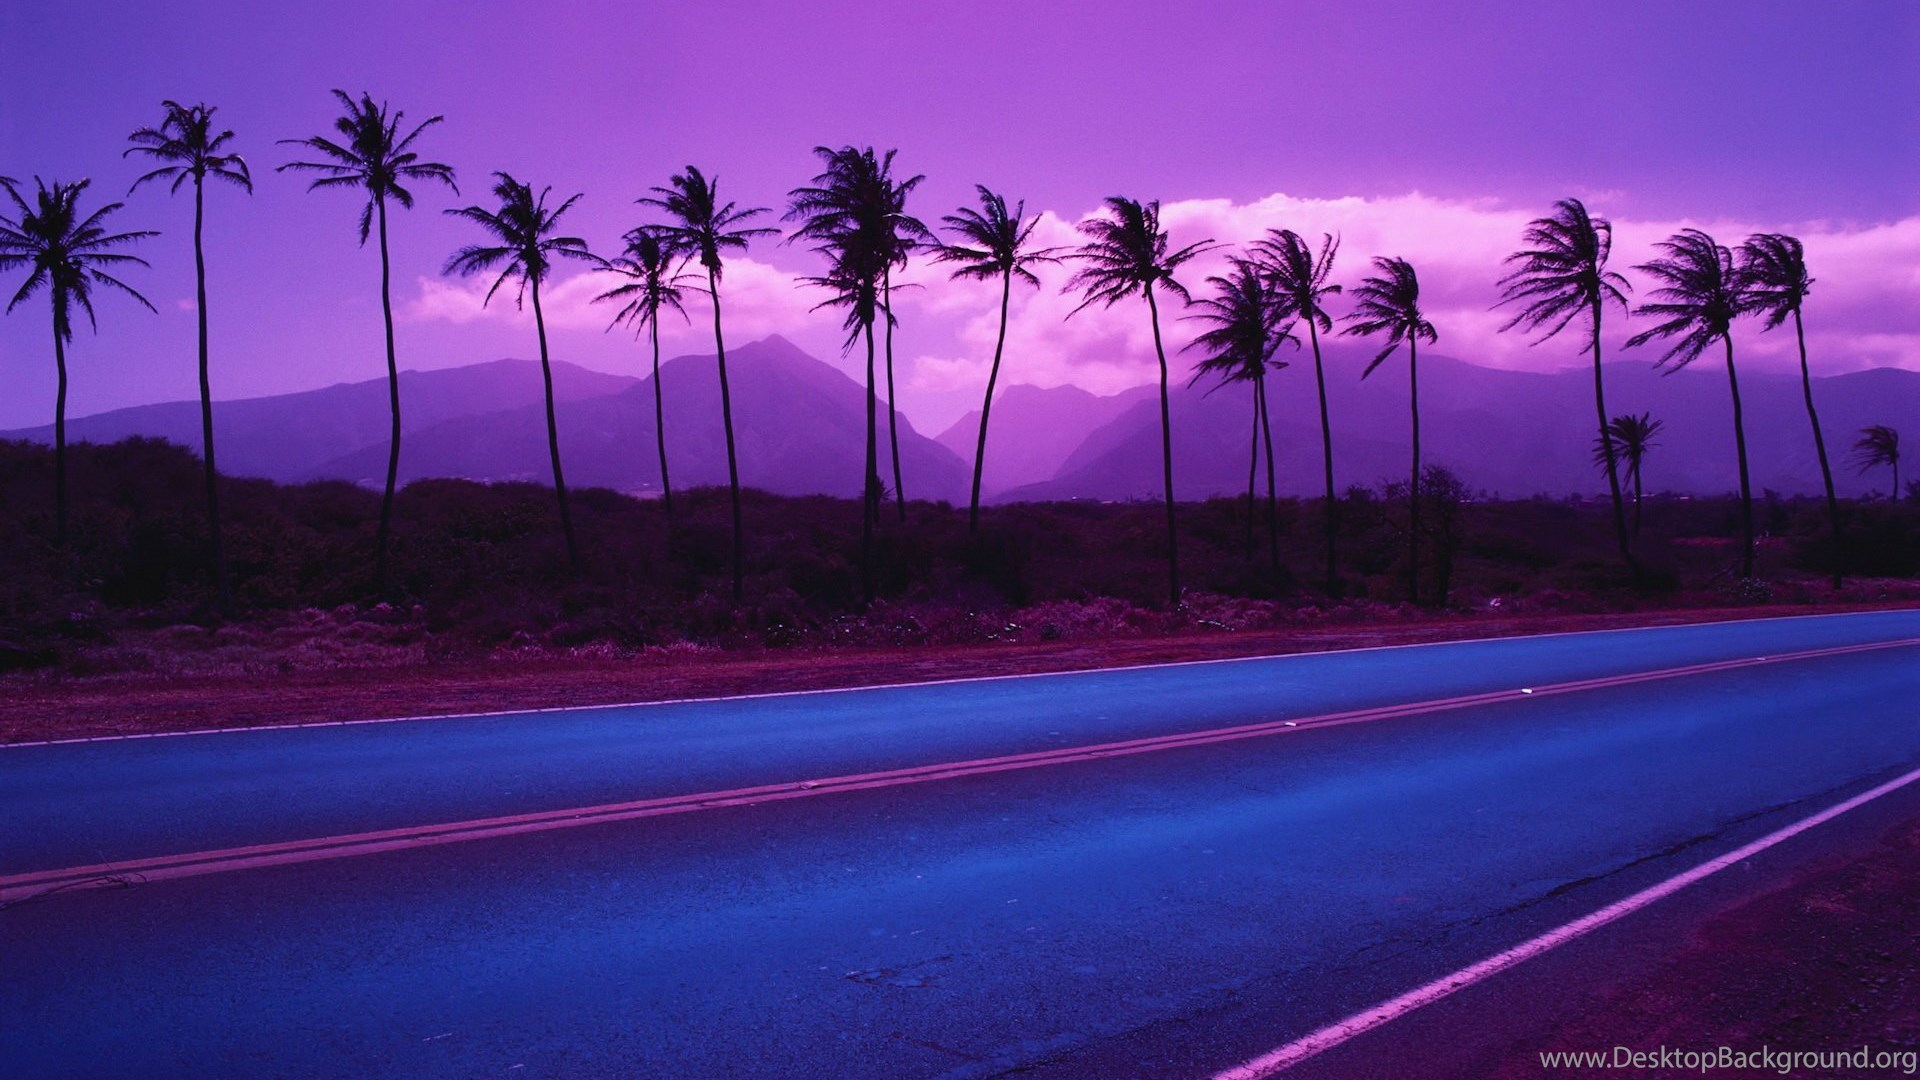 Stupendous Wallpapers Gmail Coconut Trees Beach Purple 1920X1200 Download Free Architecture Designs Scobabritishbridgeorg